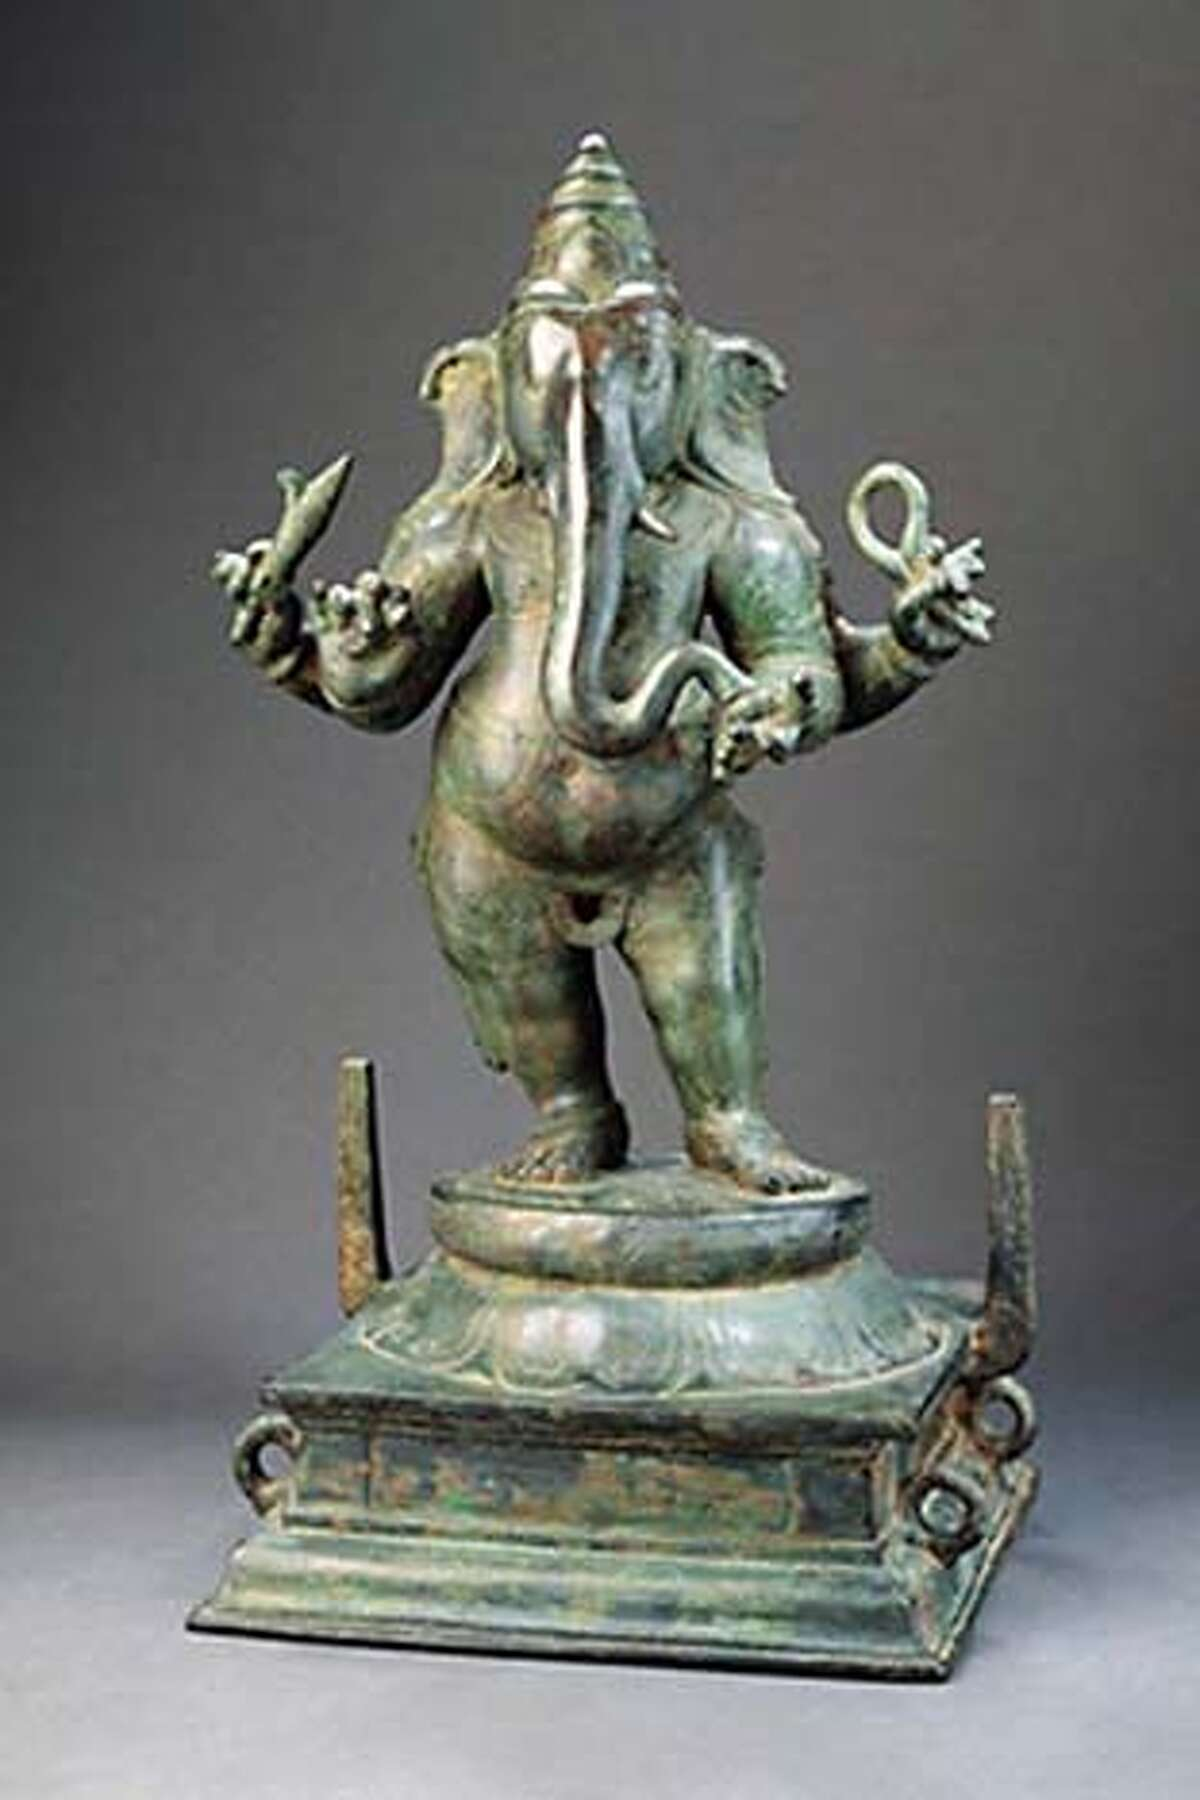 (NYT61) UNDATED -- JULY 21, 2005 -- ASIAN-SCULPTURE-EXHIBIT-3 -- A copper statue of the elephant-headed god Ganesha in an 11th-century Chola piece; in one of his hands he holds his own tusk, broken in battle, according to legend. Is is part of the exhibition �Images of the Divine: South and Southeast Asian Sculpture From the Mr. and Mrs. John D. Rockefeller 3rd Collection� at the Asia Society in Manhattan. The 50 sculptures in the show come from what is considered to be one of the finest small gatherings of such material in the United States. (Asia Society via The New York Times)